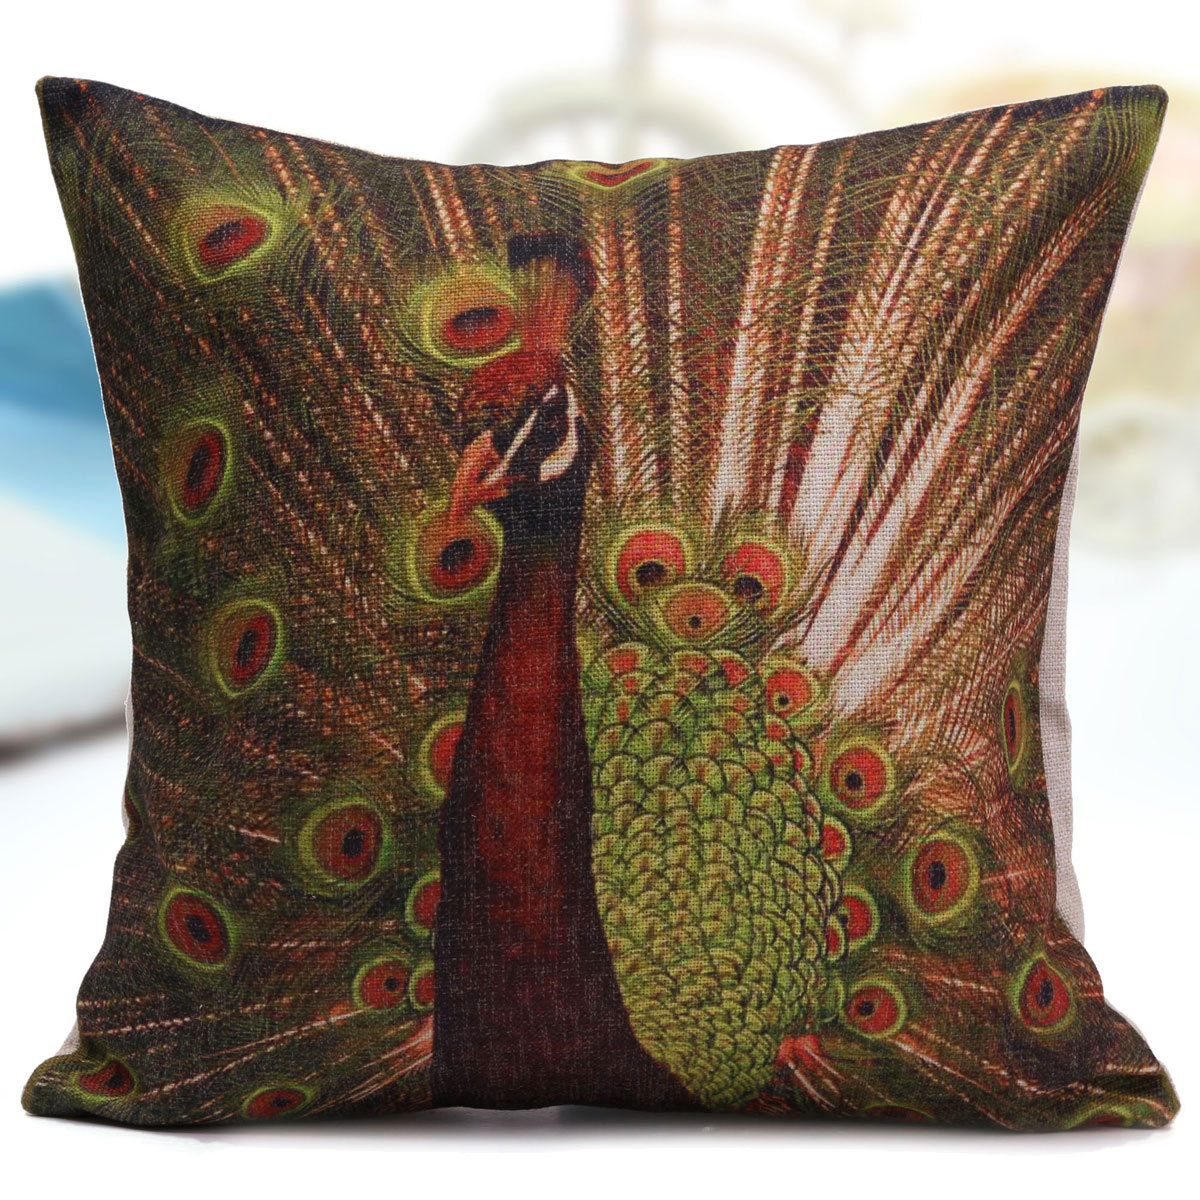 Throw Pillow Peacock : Peacock Bird Cotton Linen Throw Pillow Case Car Back Cushion Cover Decorative eBay